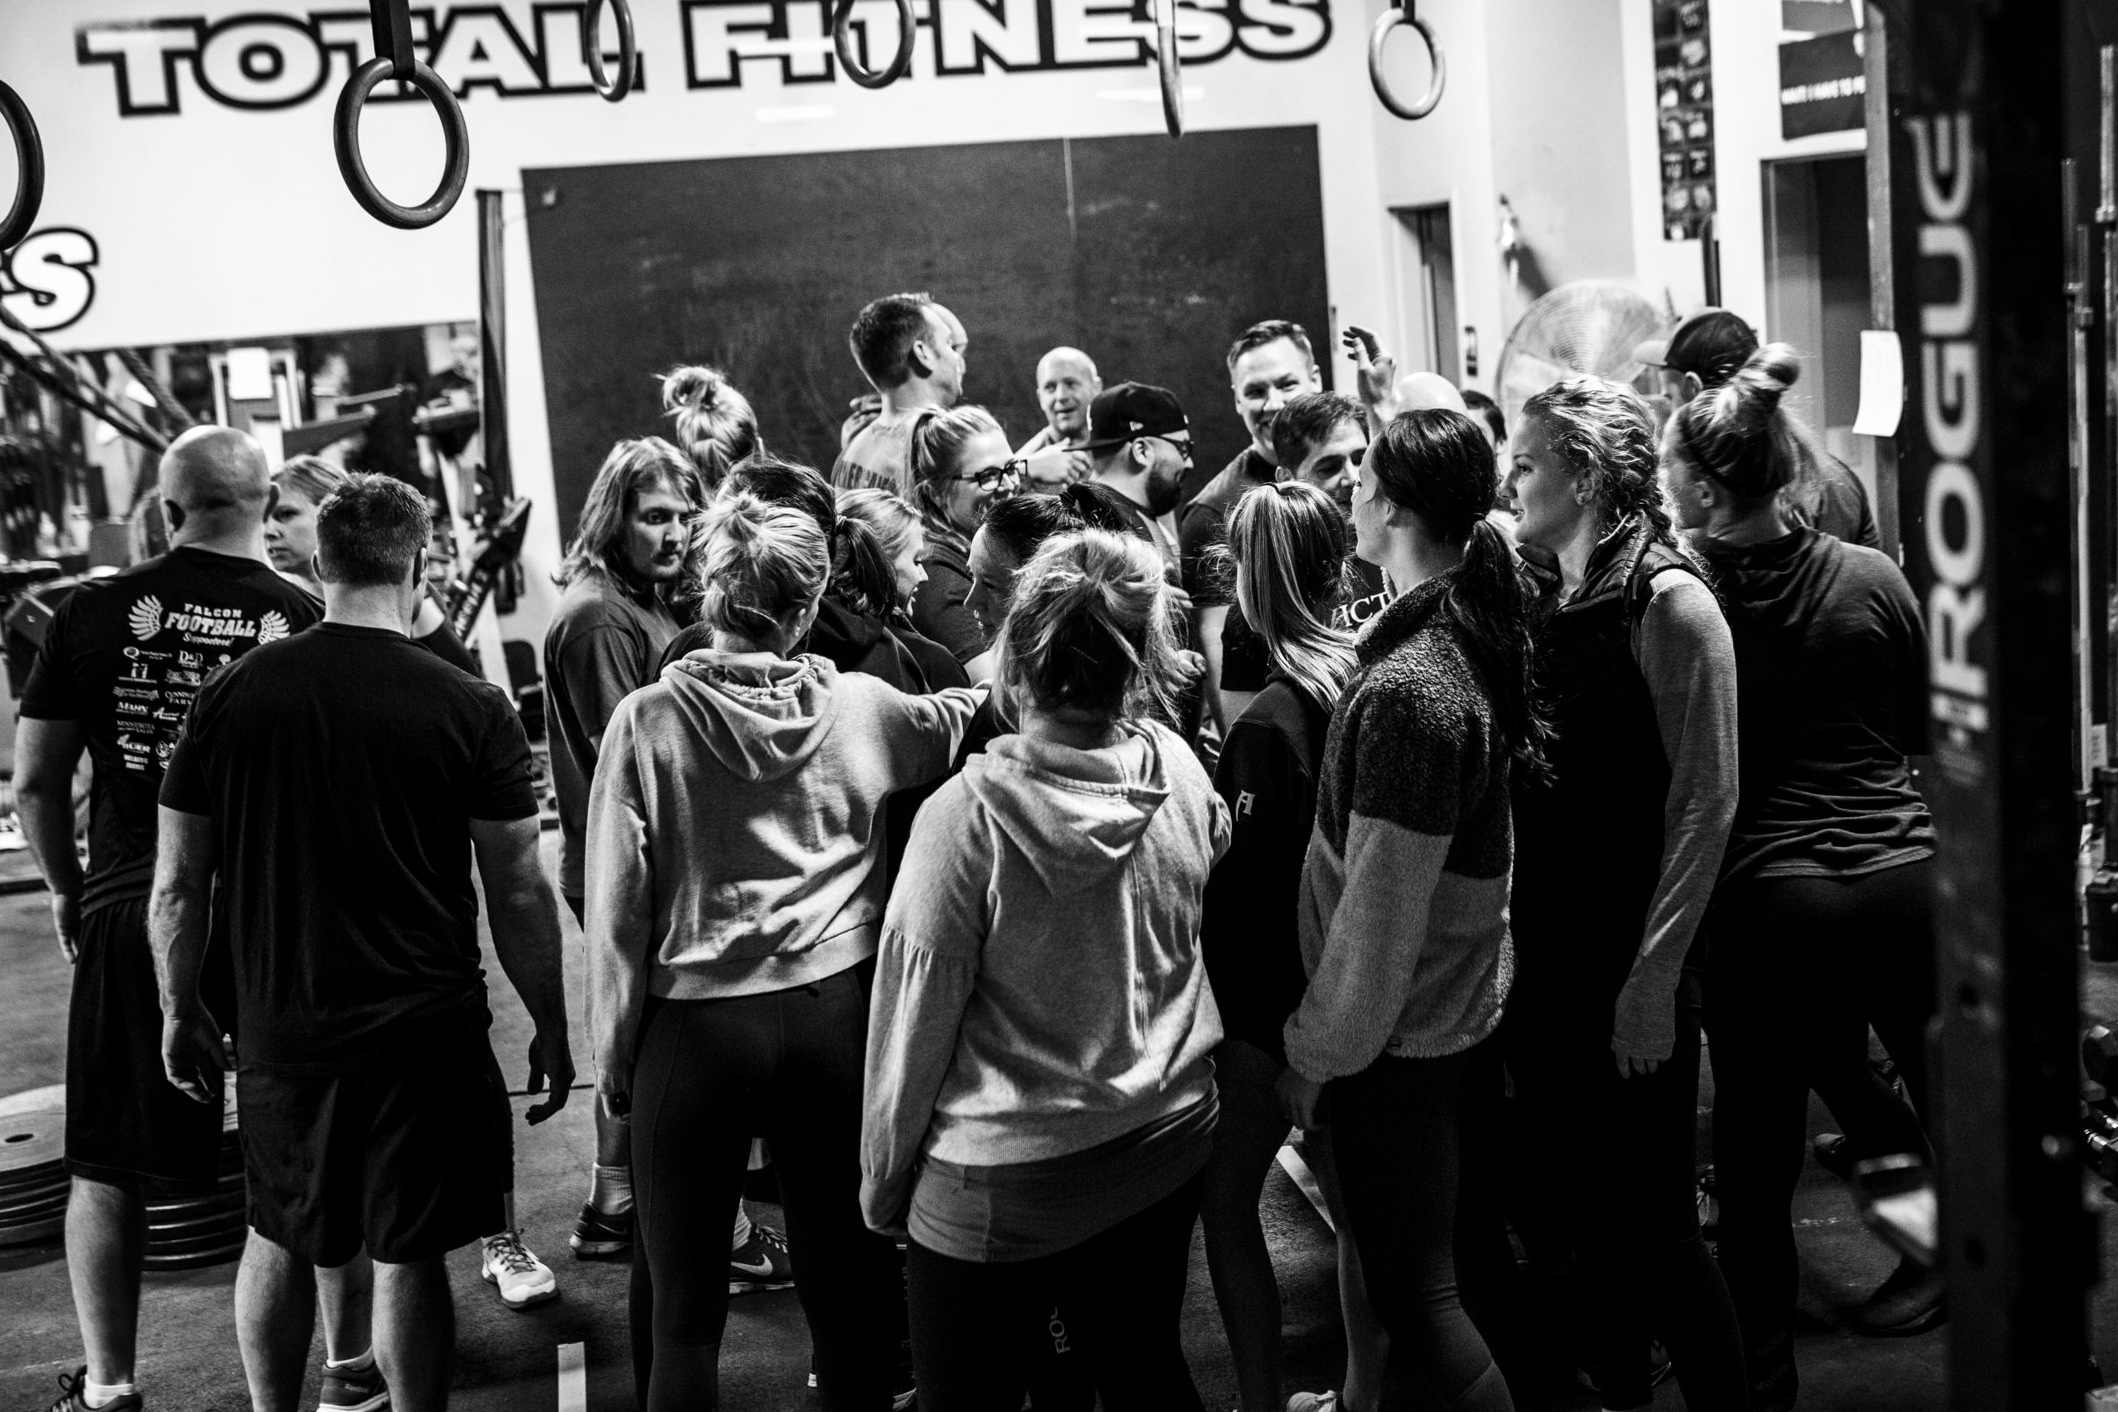 CROSSFIT ATTILA COMMUNITY - Our CrossFit Attila community is a group of athletes - of all levels - that work HARD day in and day out all while supporting each other and having a great time.